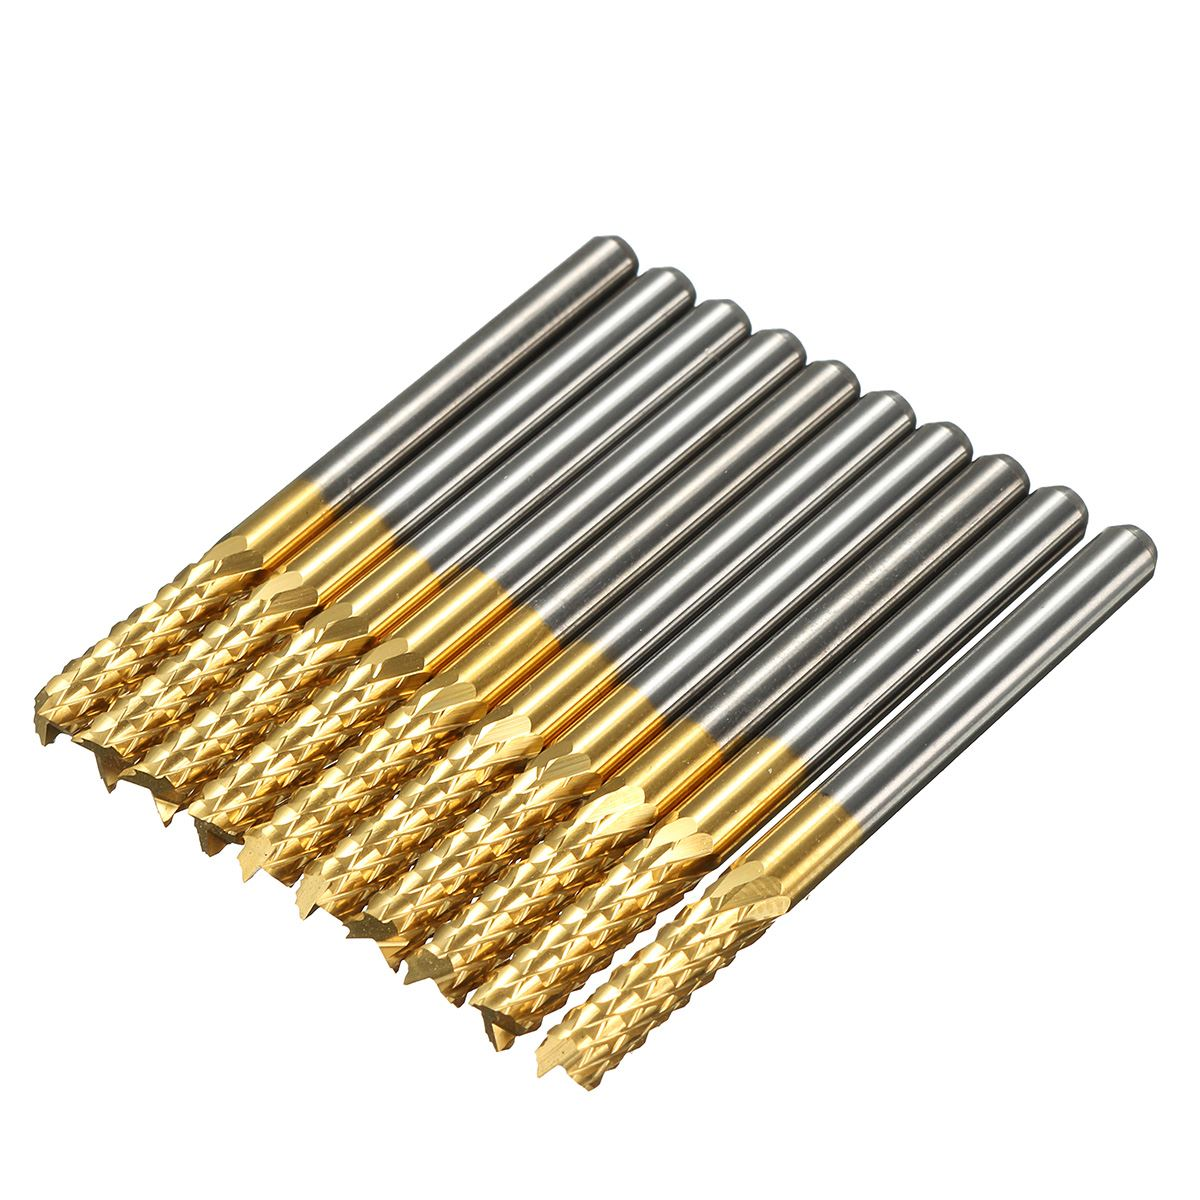 10Pcs/Box Titanium Coat Carbide 3.175X12mm End Mill Engraving Bits CNC Rotary Burrs Set Corn Milling Cutter PCB Router Bits